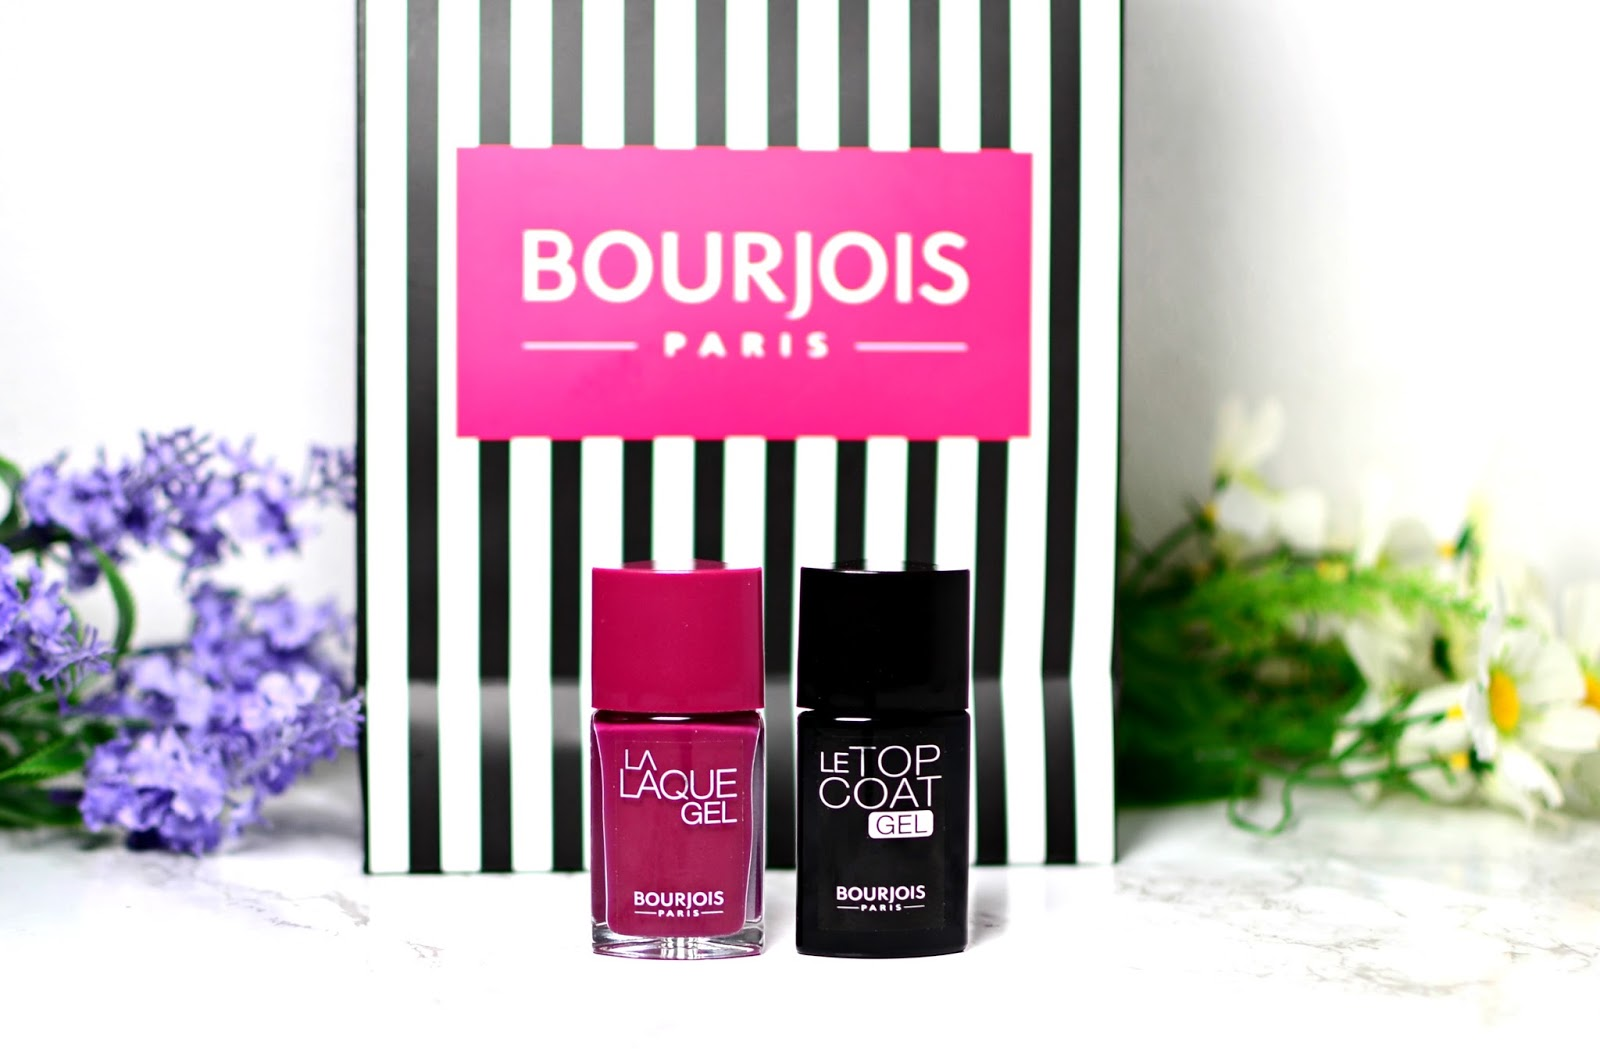 bourjois laky na nehty la laque gel a le top coat gel gabrieless. Black Bedroom Furniture Sets. Home Design Ideas